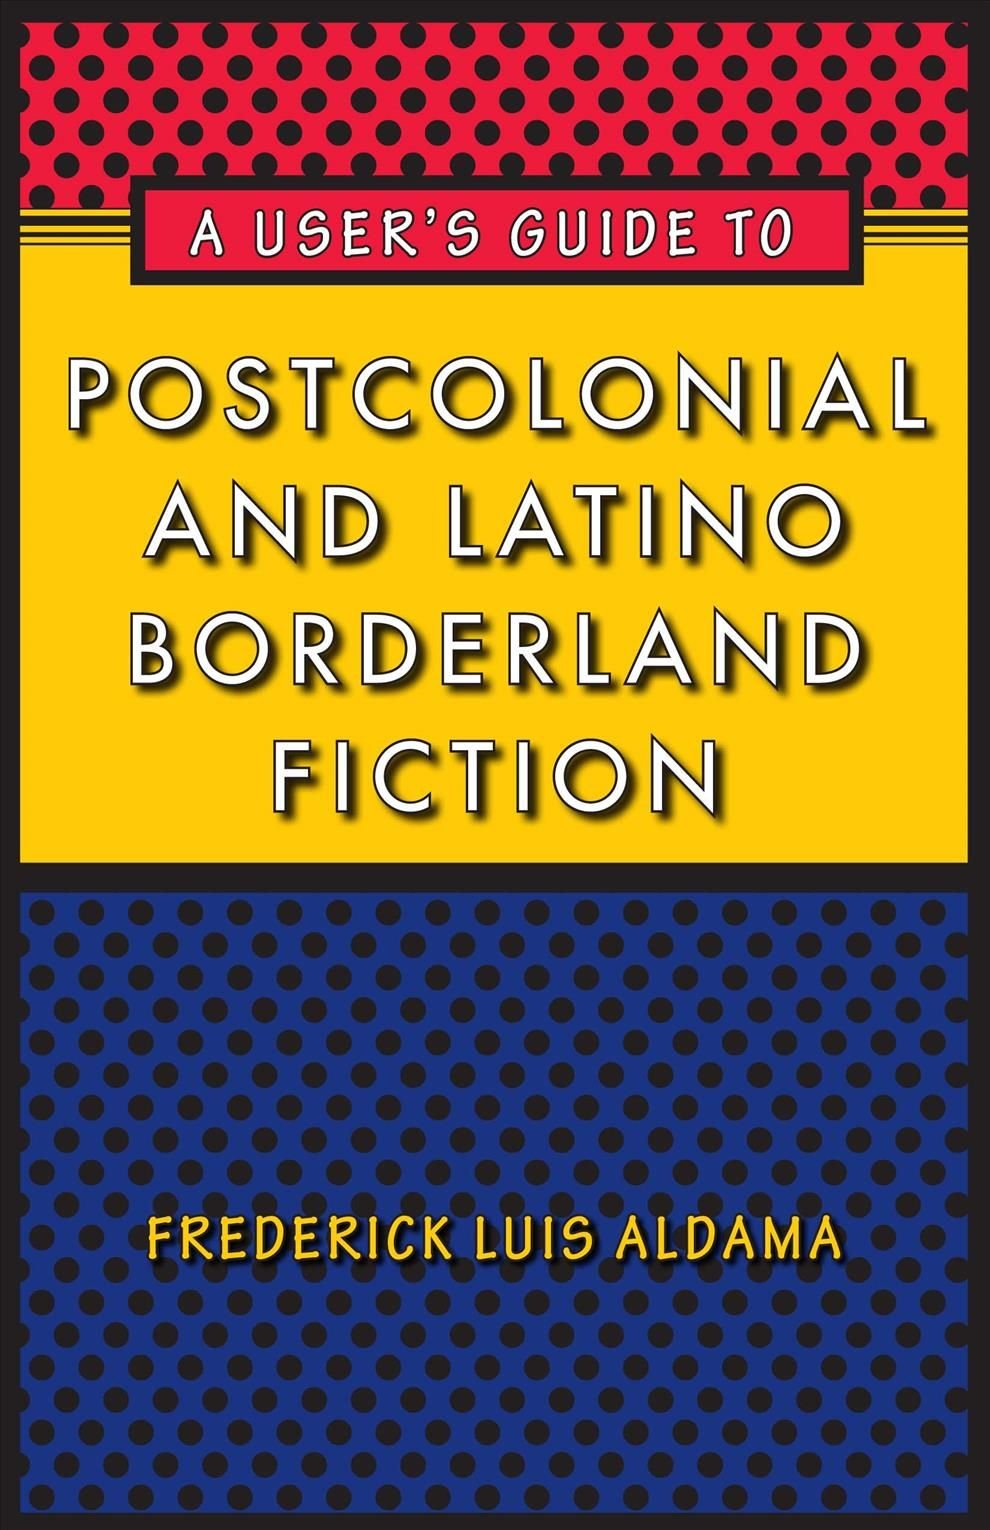 A User's Guide to Postcolonial and Latino Borderland Fiction - Frederick Luis Aldama